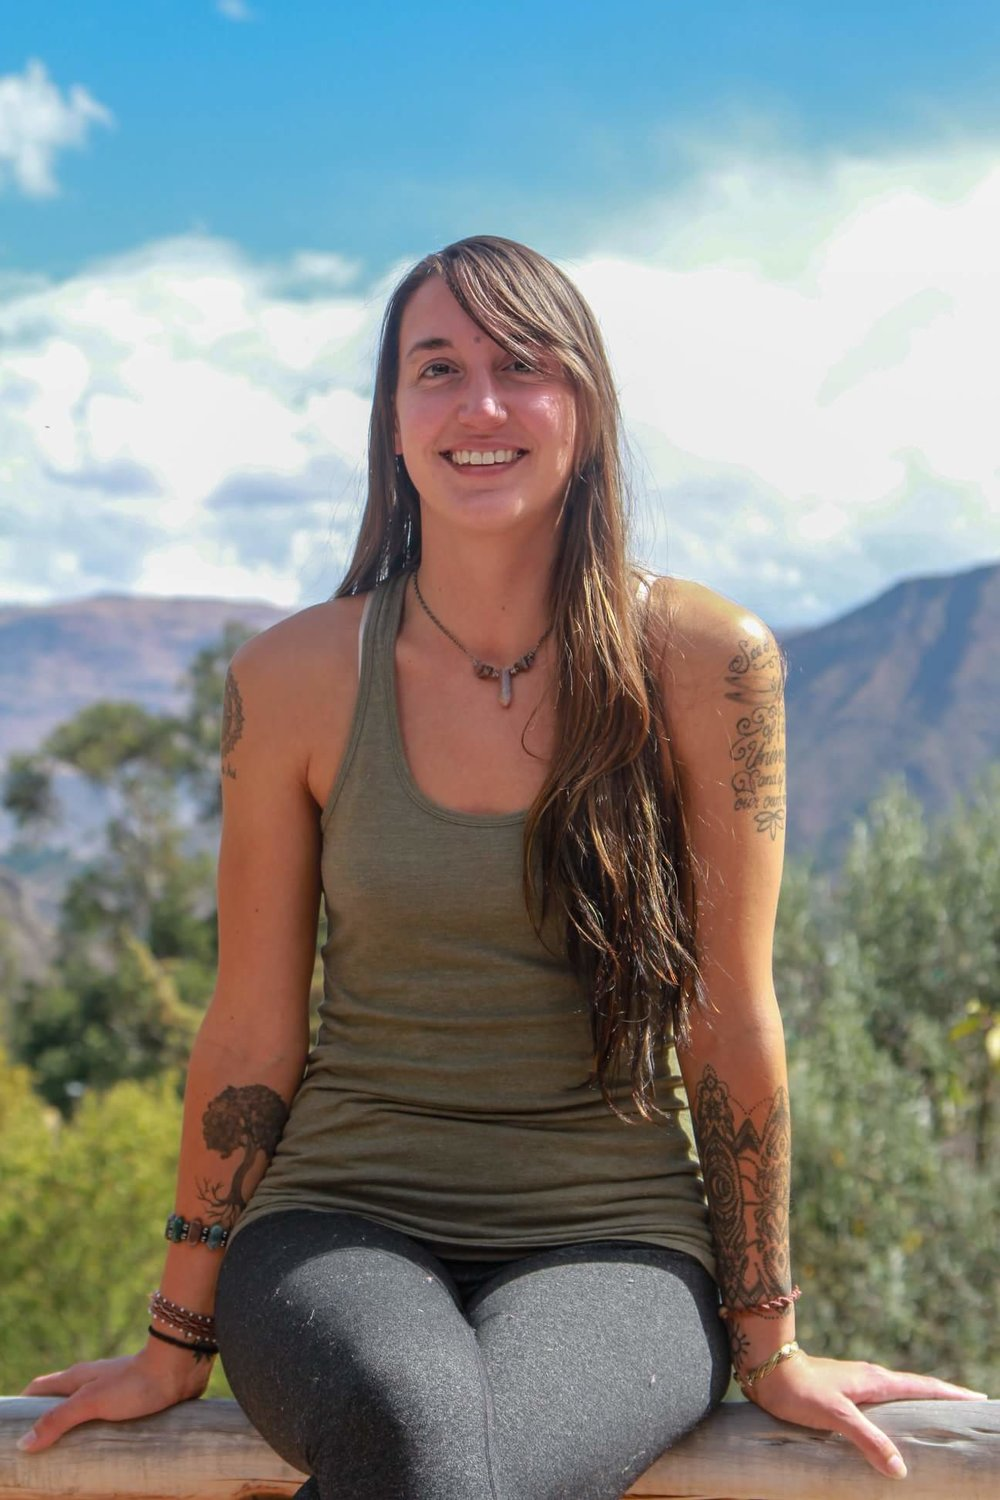 Founder - Ashley Seymour is the founder Soul Wave Yoga & Practices. Shortly after Ashley began her personal practice, she knew she wanted to share and hold space for others to unfold in their own personal transformation. Ashley has trained with Frog Lotus Yoga and School Yoga Institute to receive her 500 hour teacher training certification. This path has also led her to become a Reiki level 2 practitioner, trauma sensitive trained instructor and to create a Youtube Yoga Channel. Ashley's teachings focus on intuitive and energetic practices, based on the needs of the class or individual. After a trip to Peru for her 300 hour training, she deepened her relationship to energetic healing and shamanism and incorporates these techniques/experiences not only in her reiki/energetic sessions but weaves these lessons into her classes and workshops. Ashley continues to travel to Peru to teach yoga teacher training's and to deepen her experience with shamanism & energy work.Ashley' teaches Yoga Teacher Trainings with School Yoga Institute and continues to share yoga classes, workshops and ceremonies. Ashley emphasizes the importance of becoming aware of one's emotional, mental, and energetic state when moving deeper into any practice so that there is presence for releasing any blockages, patterns of the mind, emotions, or limitation that are no longer in service of one's highest good. The body holds imprints from our past and through the physical practice one begins to unravel these tensions and release even deeper when focused, present, and connected with the rhythms of the breath. Sharing ceremony, yoga, meditation, workshops, and space with others is Ashley's great honor and she does so with immense gratitude for the divine and beautiful souls that create the platform for her to live out her life's purpose. Ashley share's her heart and hopes her offering's spark a light in others, so that they may continue on their path of uncovering their Divine connection to Source.